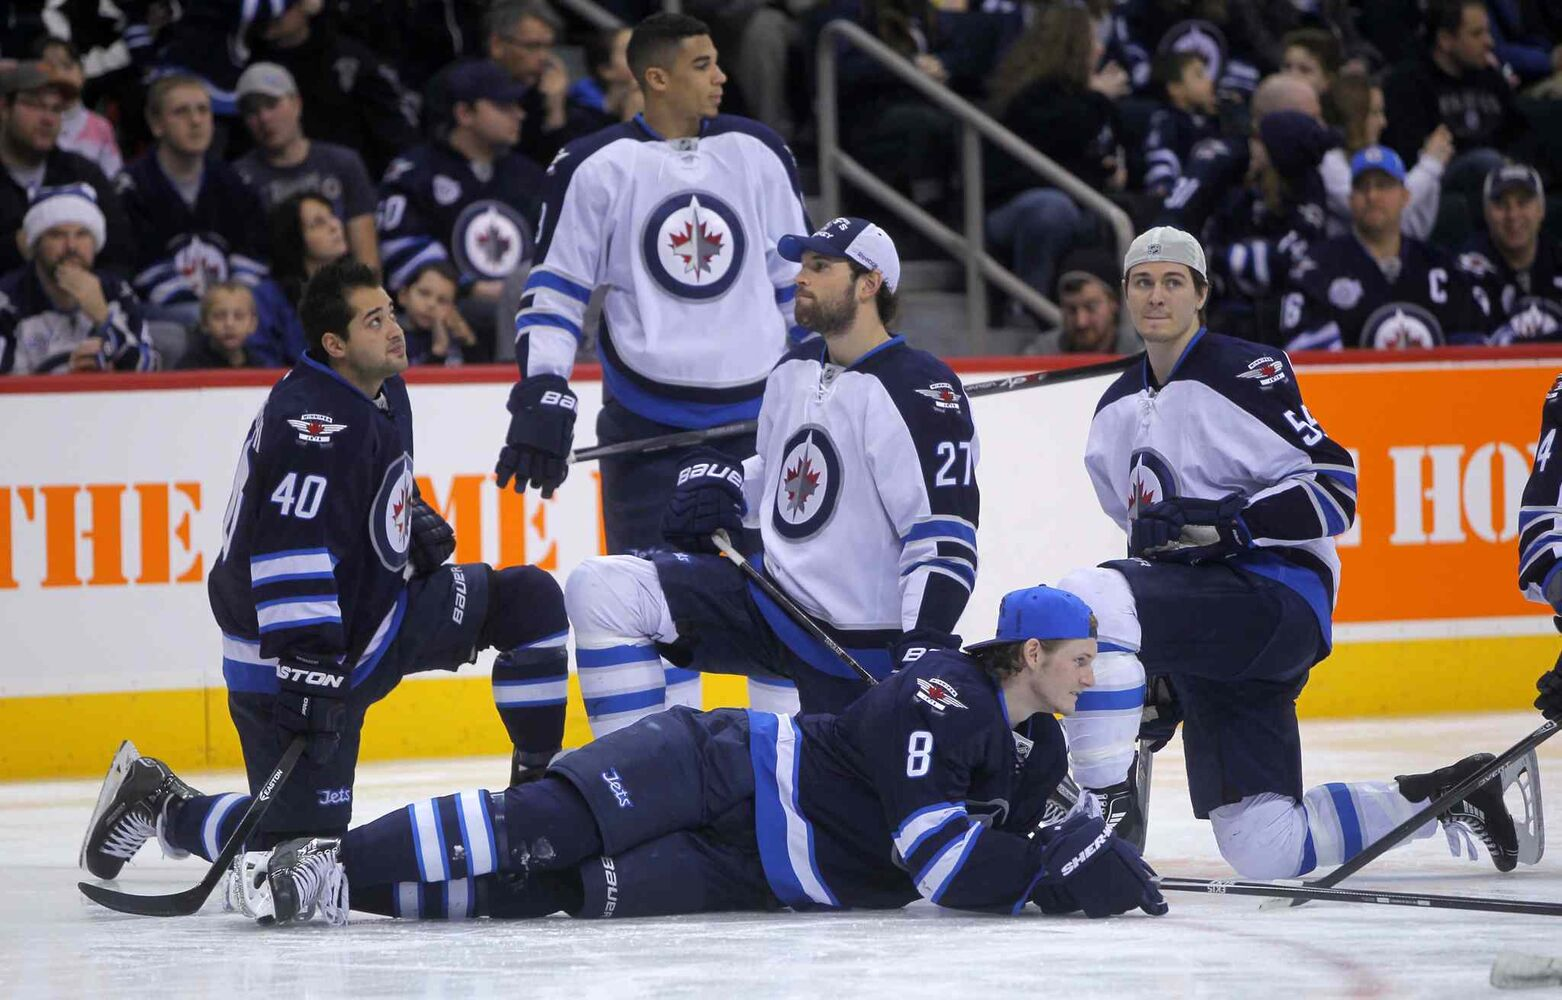 Members of the Winnipeg Jets were split up into Team White and Team Blue for the skills competition. Clockwise, from left: Devin Setoguchi, Evander Kane, Eric Tangradi, Mark Scheifele and Jacob Trouba.